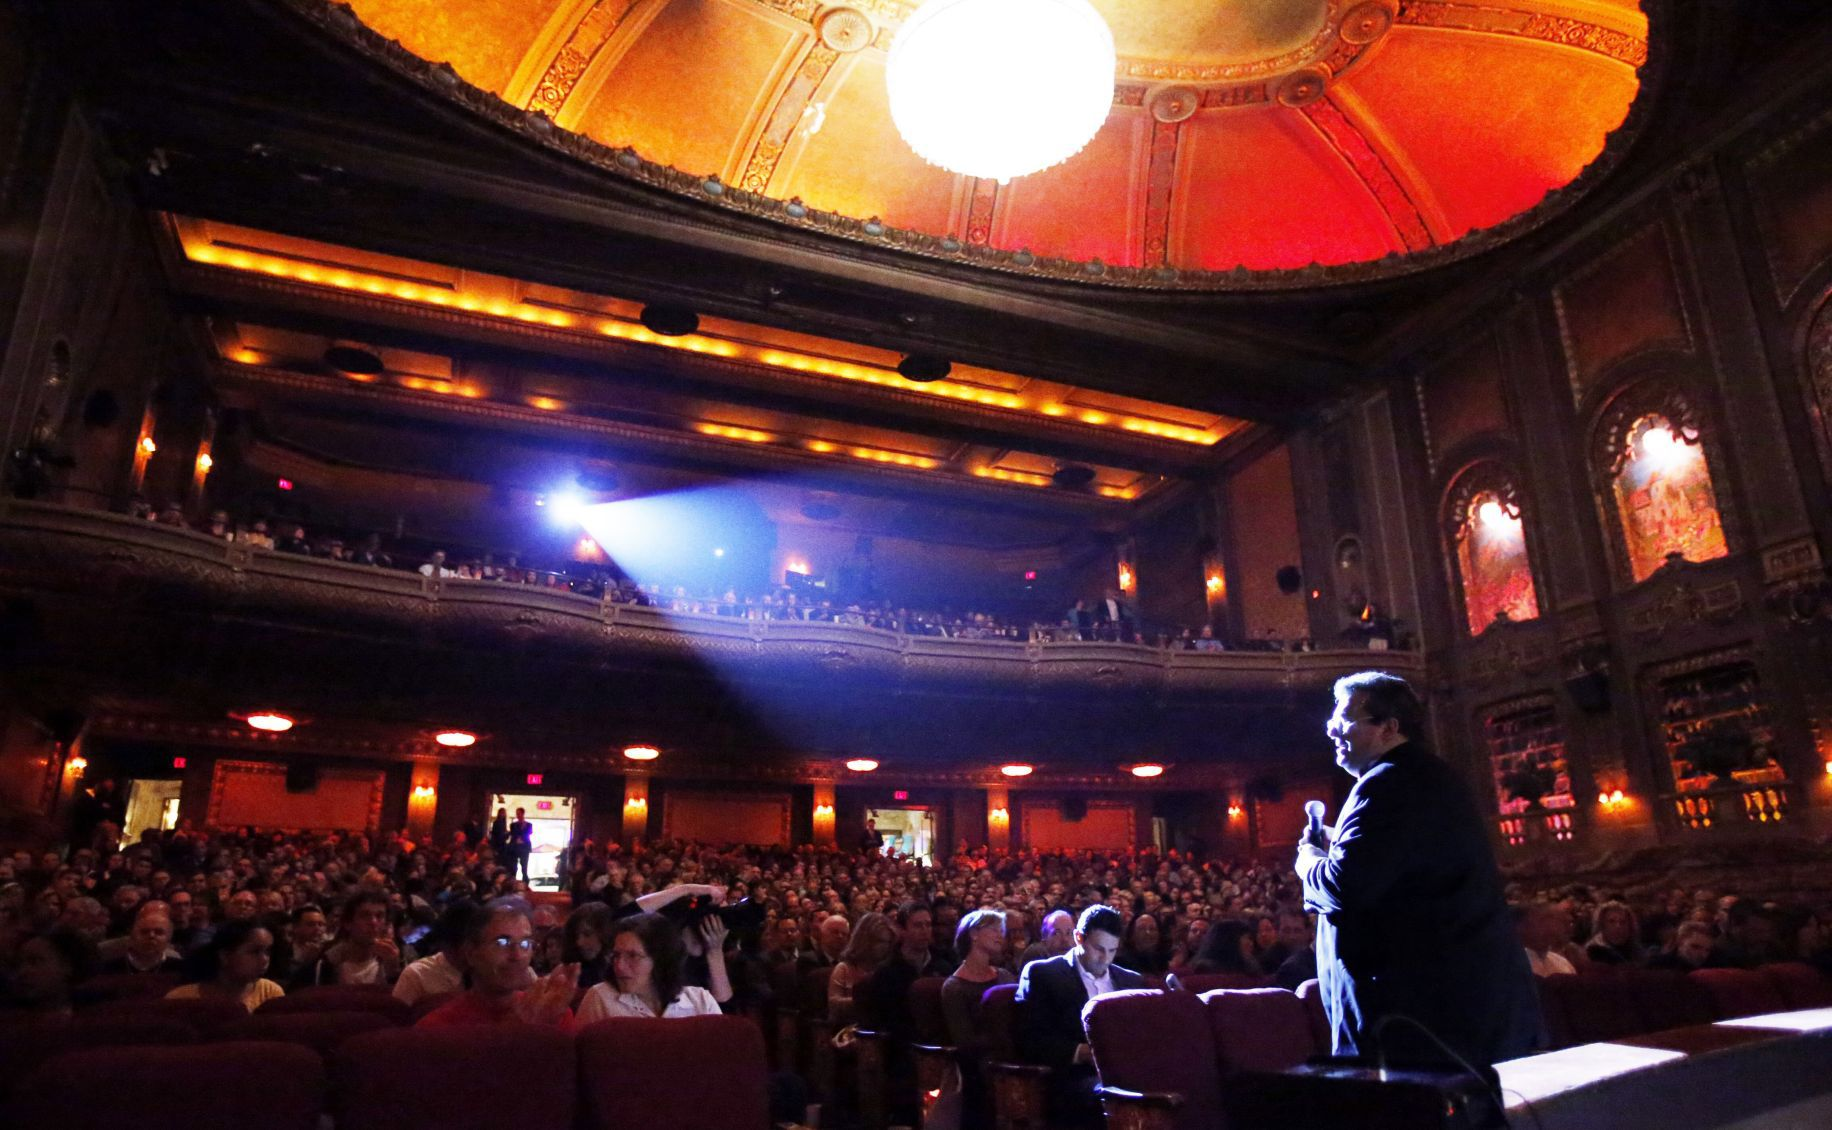 Byrd Theatre in Carytown to raise ticket